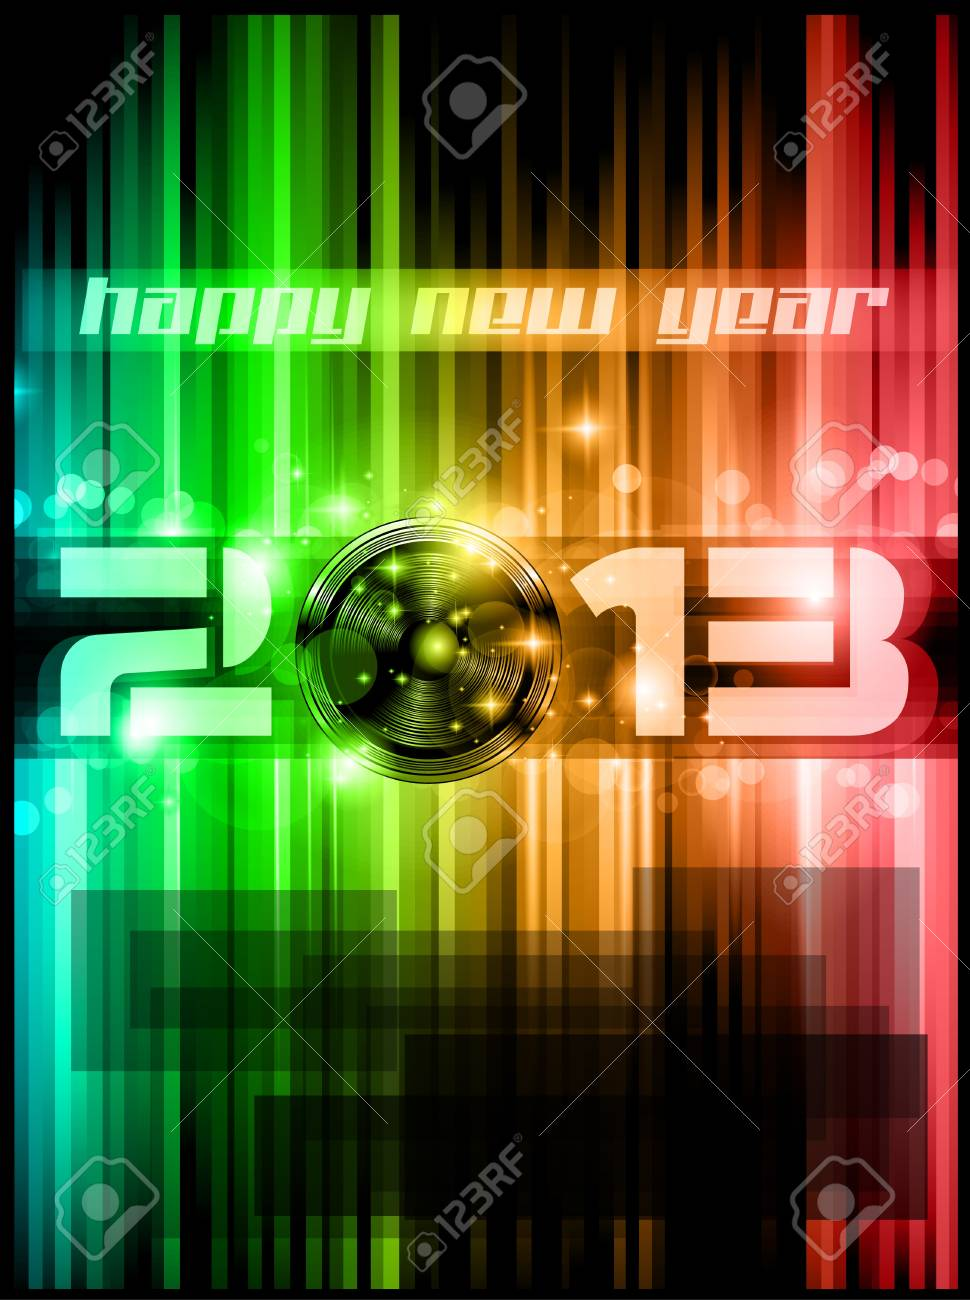 Colorful 2013 New Year Celebration Background with Glitter and Rainbow Colours Stock Vector - 16004695